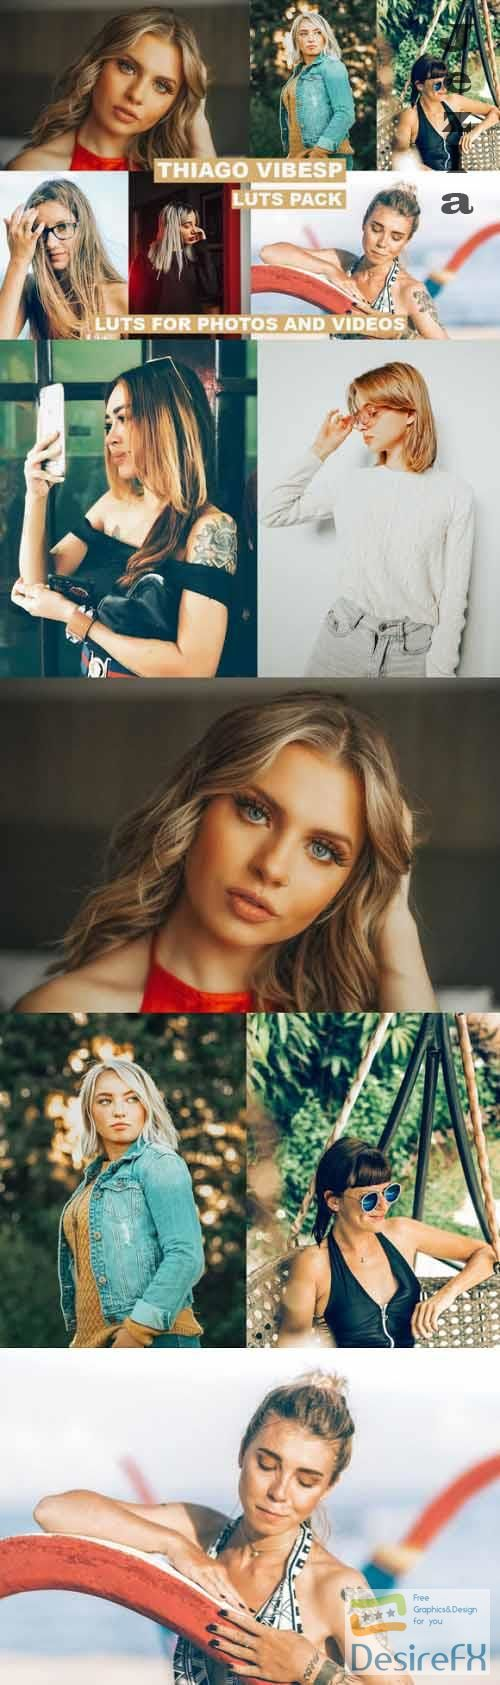 Cinematic LUTs for Photos and Videos